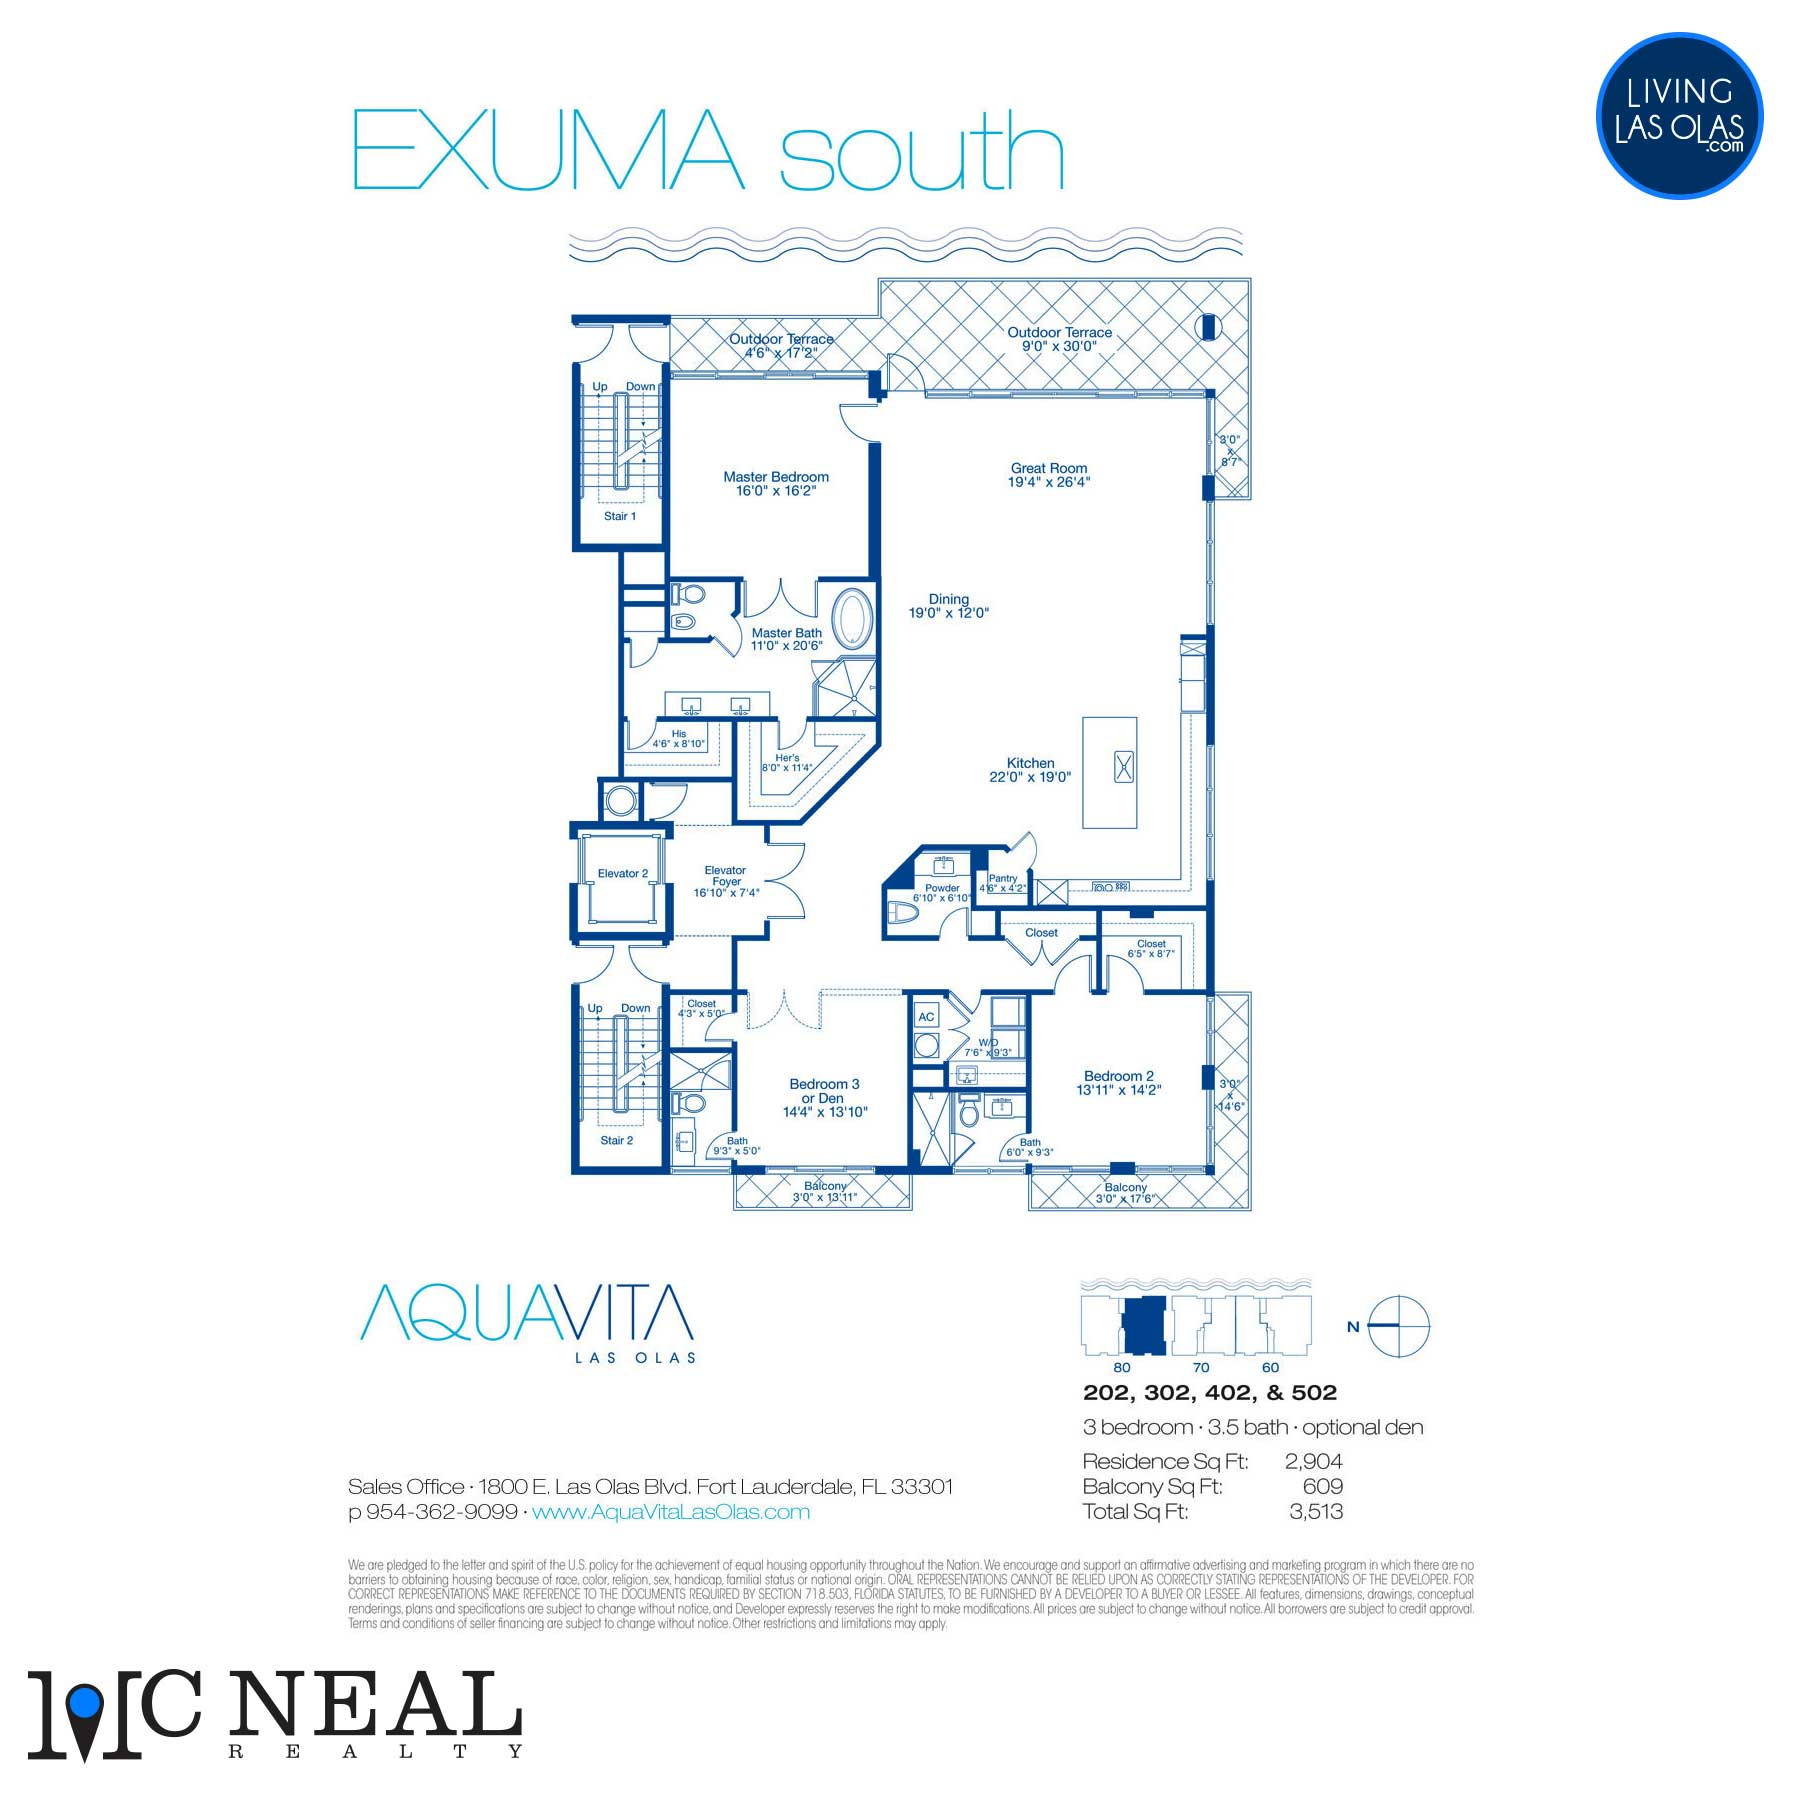 AquaVita Las Olas Floor Plans Exuma S